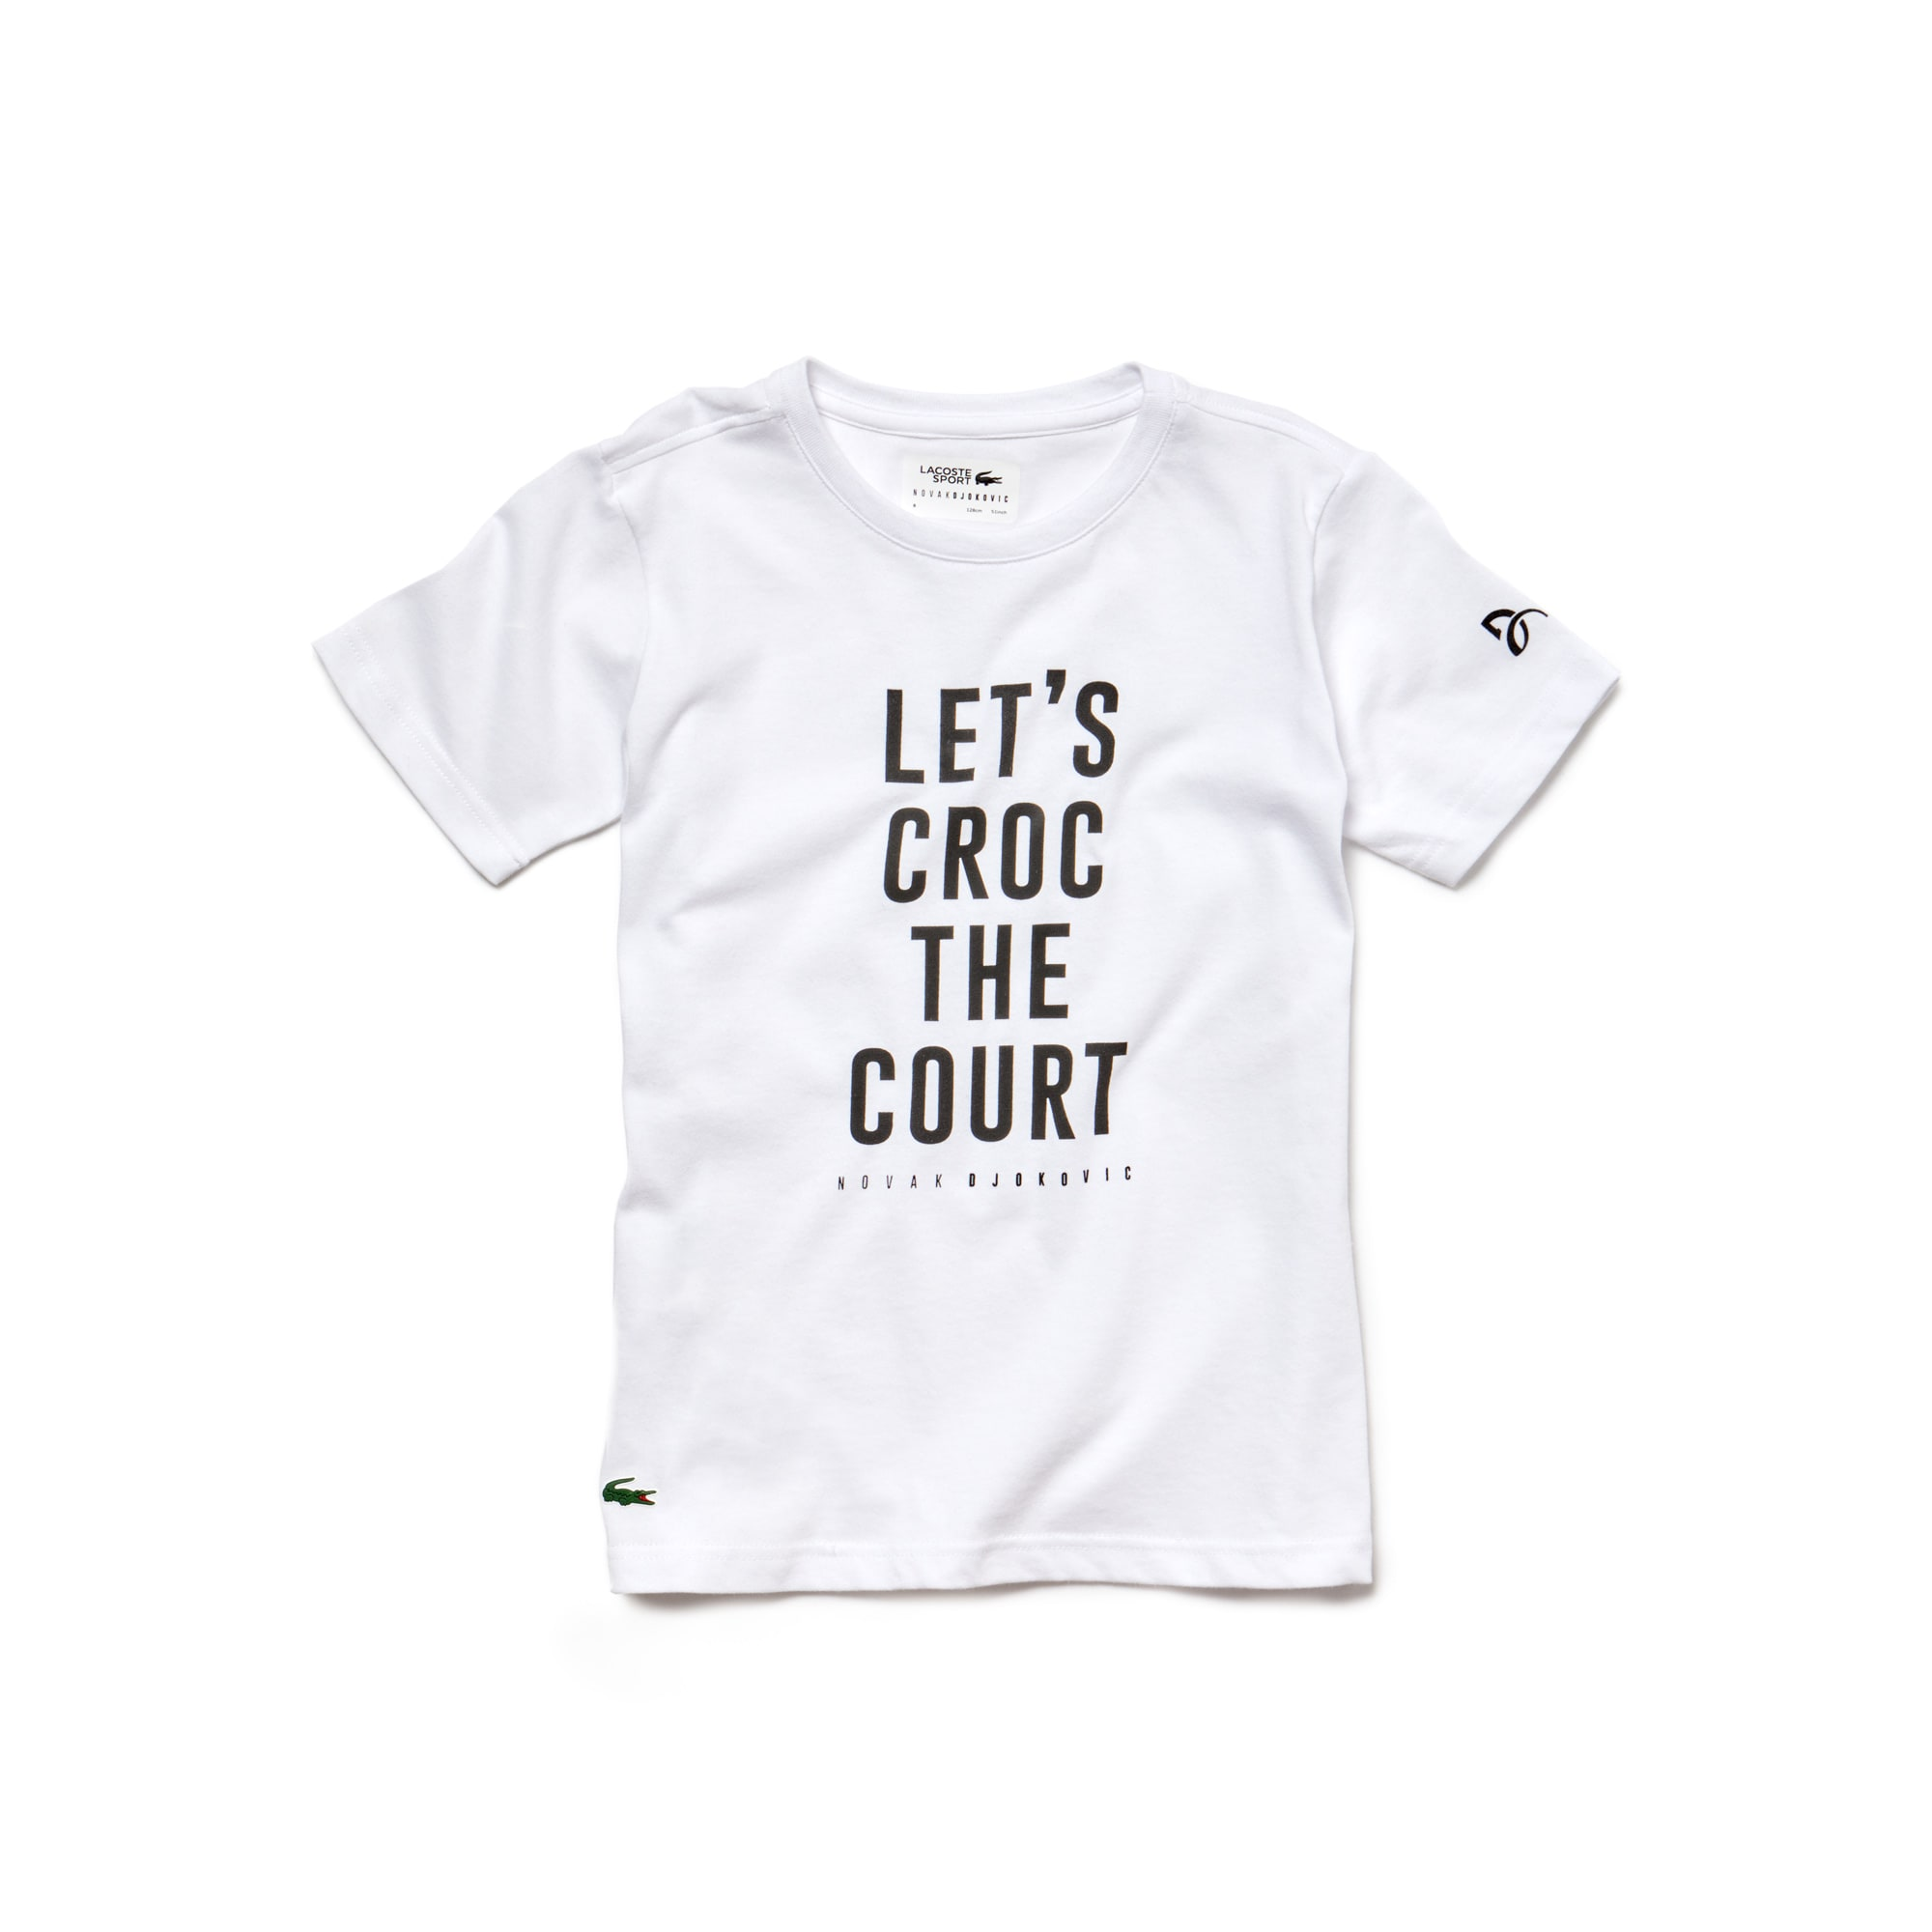 Camiseta De Niño Lacoste SPORT Novak Djokovic Support With Style -Off Court Collection En Tejido De Punto Técnico Con Inscripción